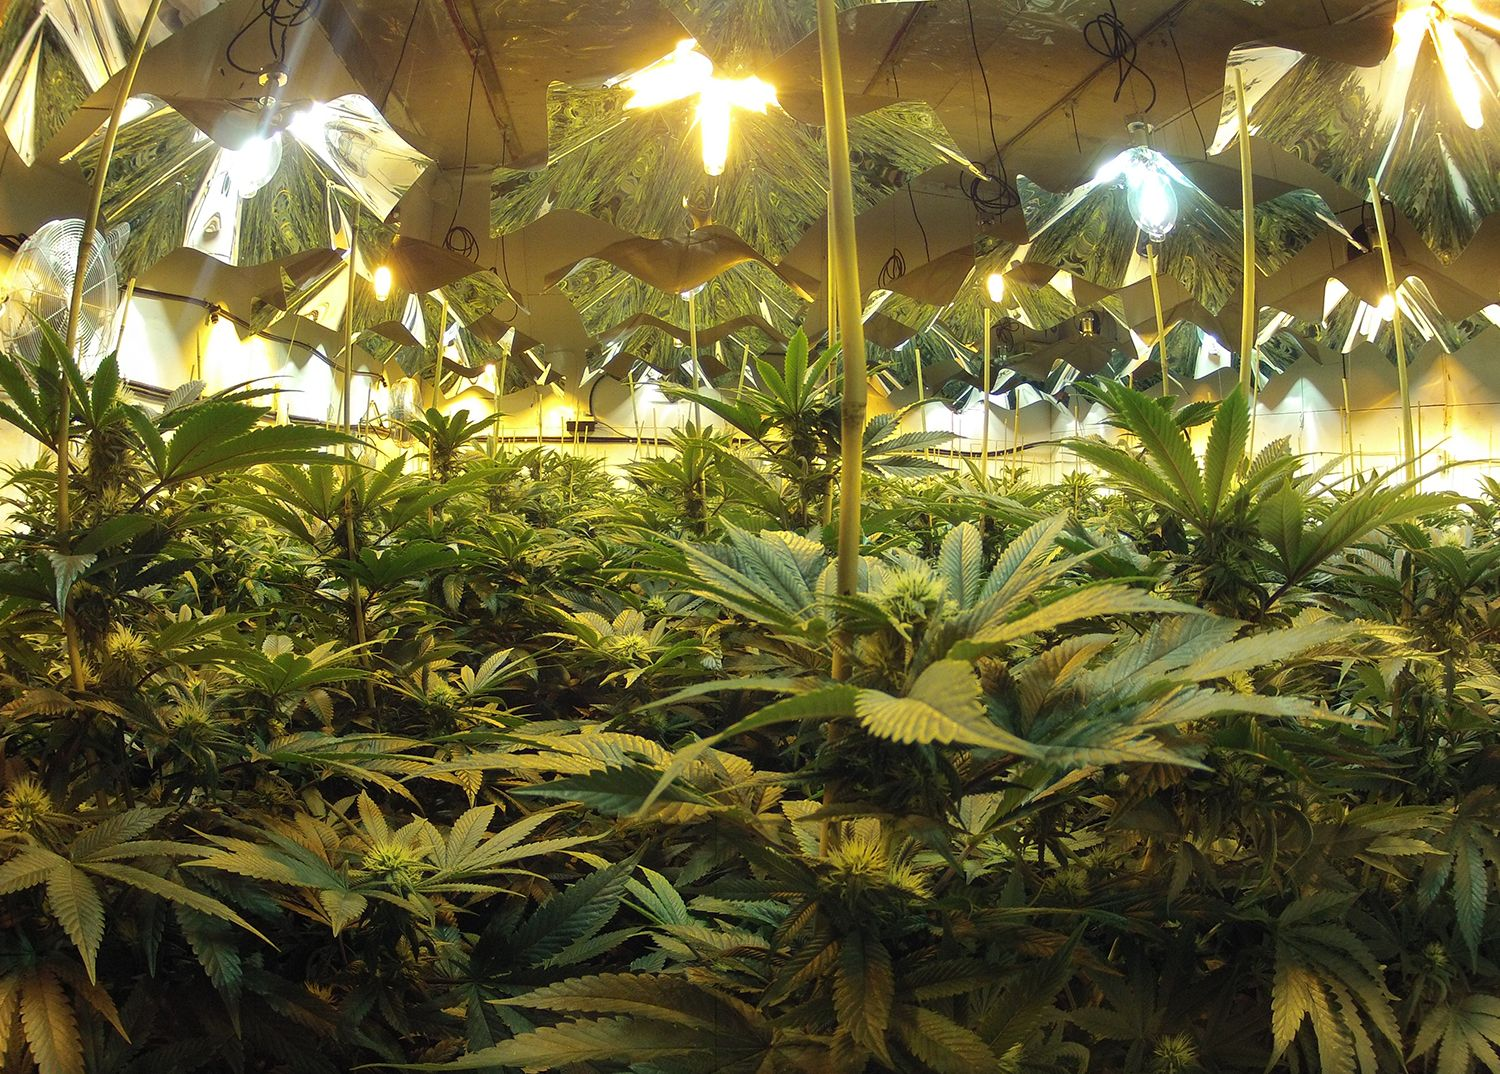 multiple plants of cannabis drying under light